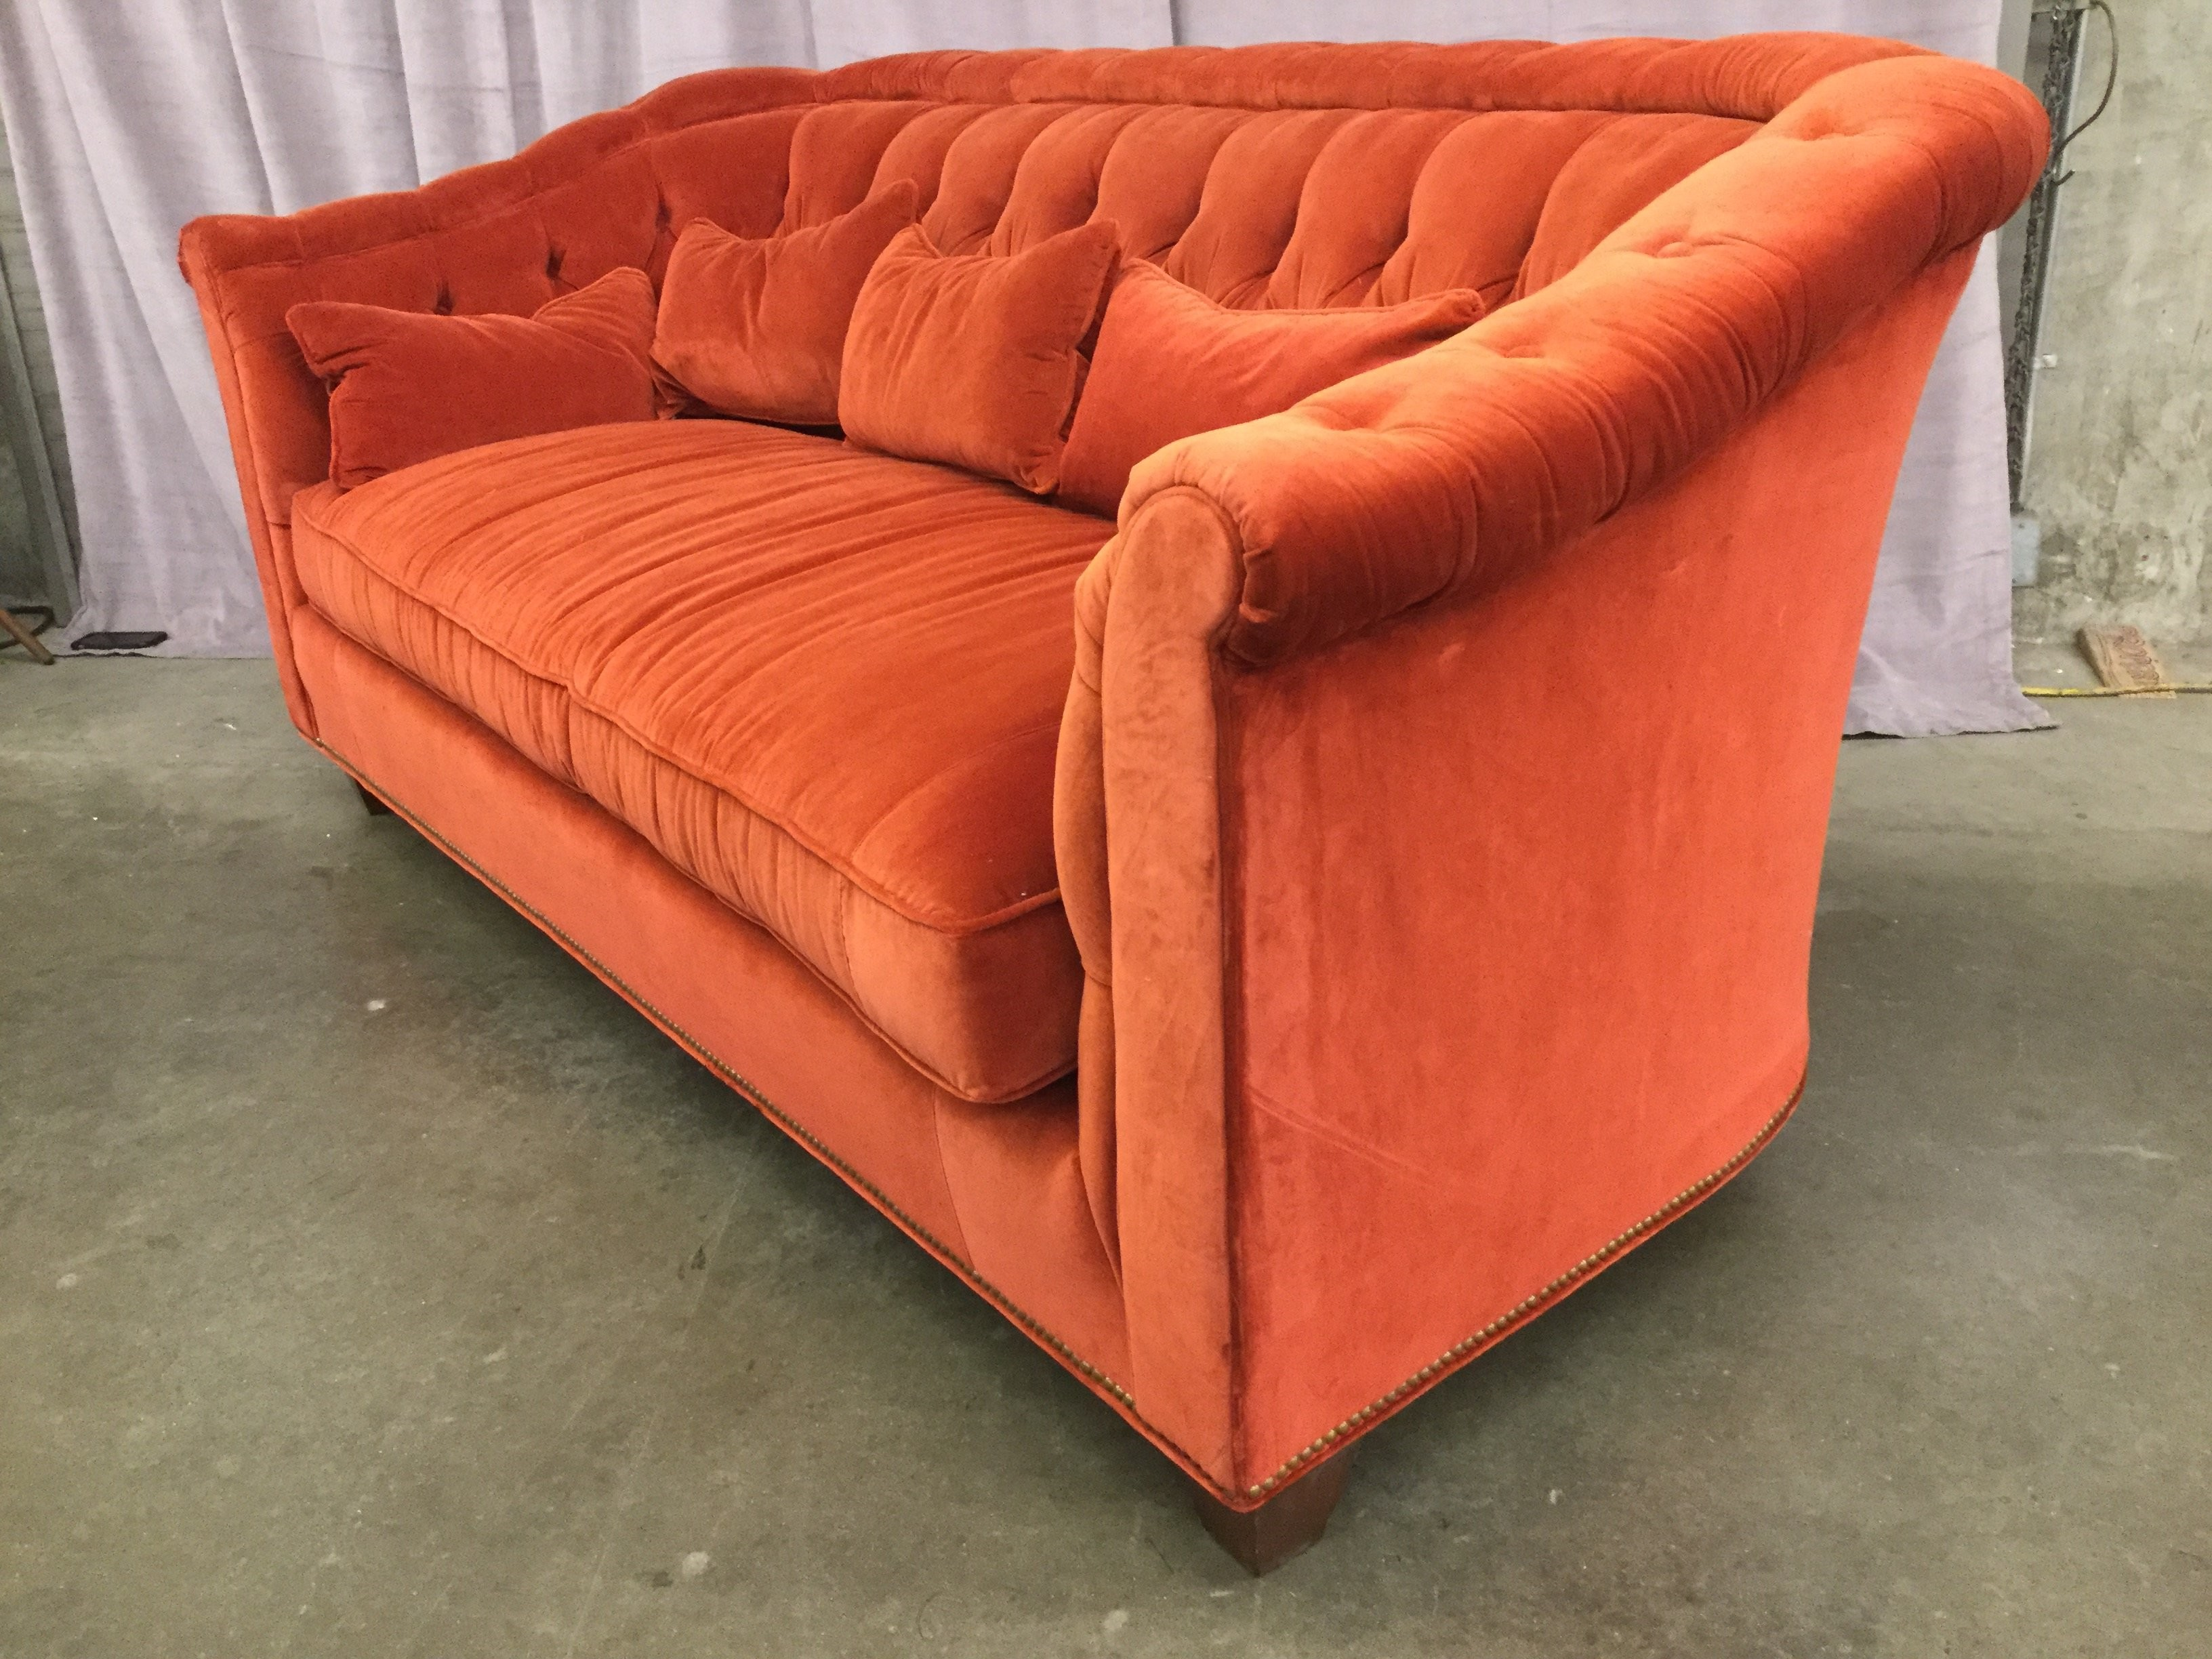 Sofa, Red/Orange Velvet, Chesterfield Style, Buttoned Back ...